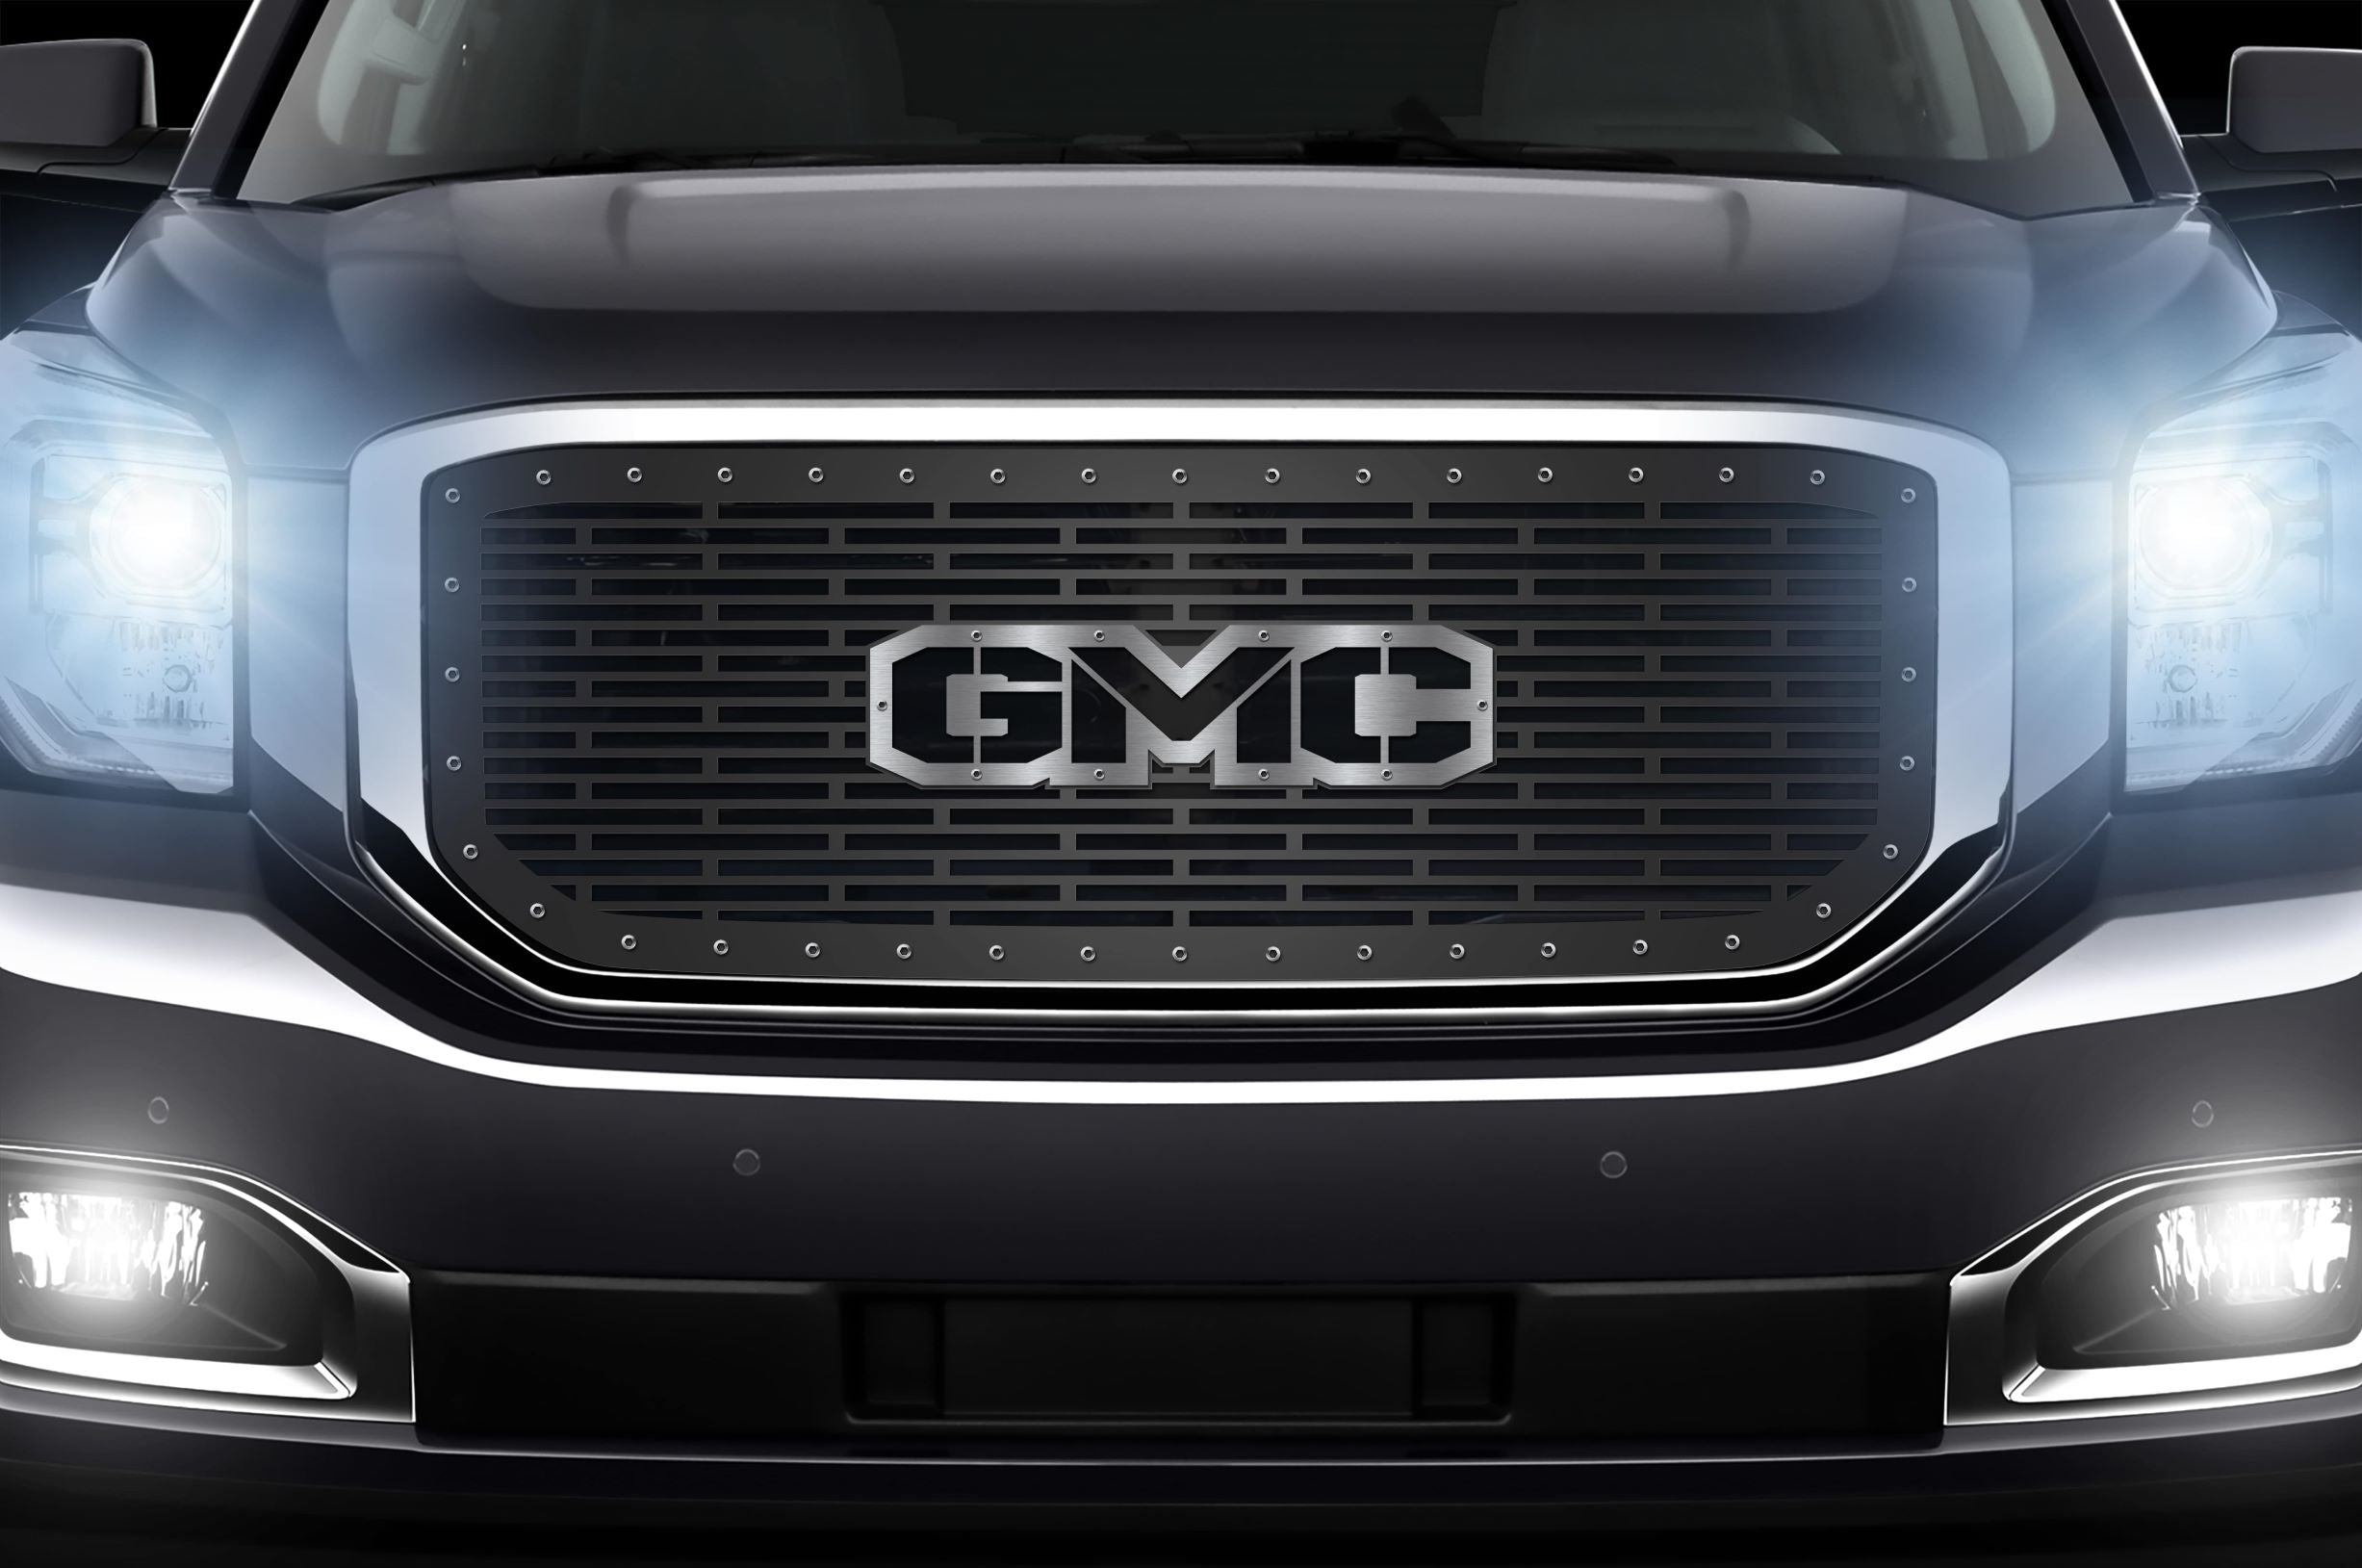 1 Piece Steel Grille for GMC Yukon Denali 2015-2020 -GMC Steel Overlay